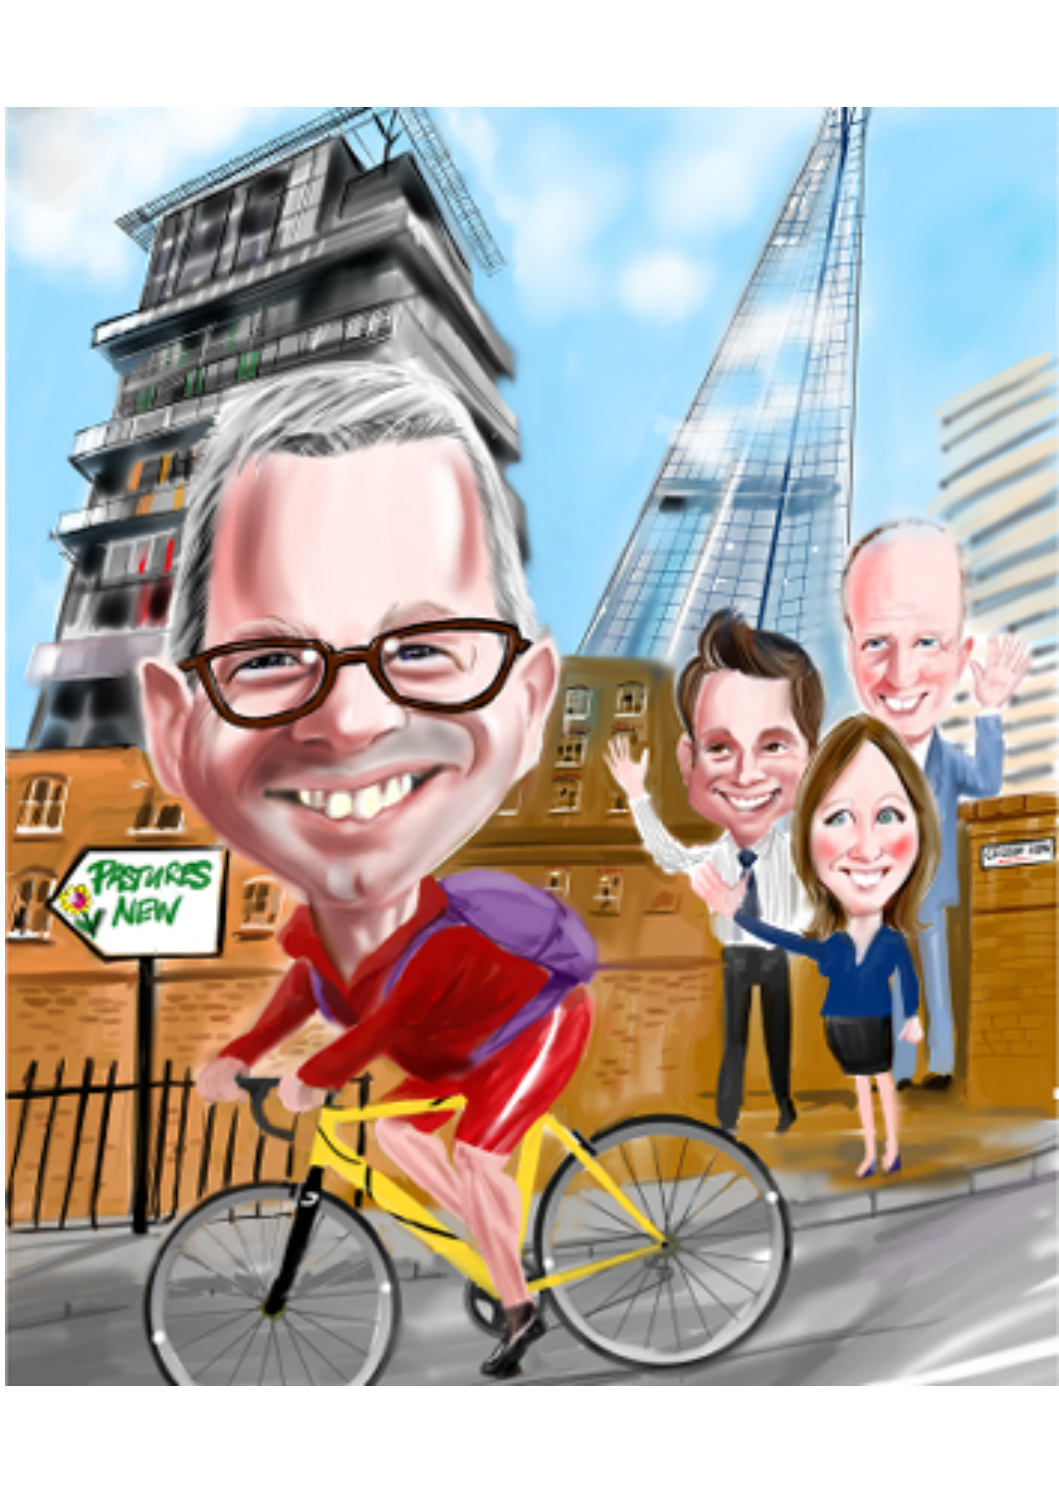 Full colour digital caricature of cyclist with Shard background and work colleagues waving goodbye